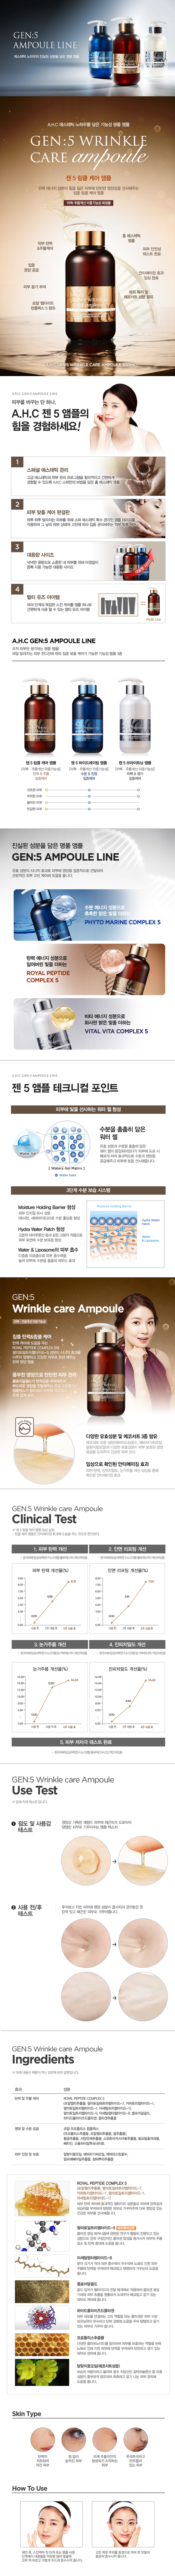 AHC Gen 5 Wrinkle Care Ampoule 50ml malaysia singapore indonesia